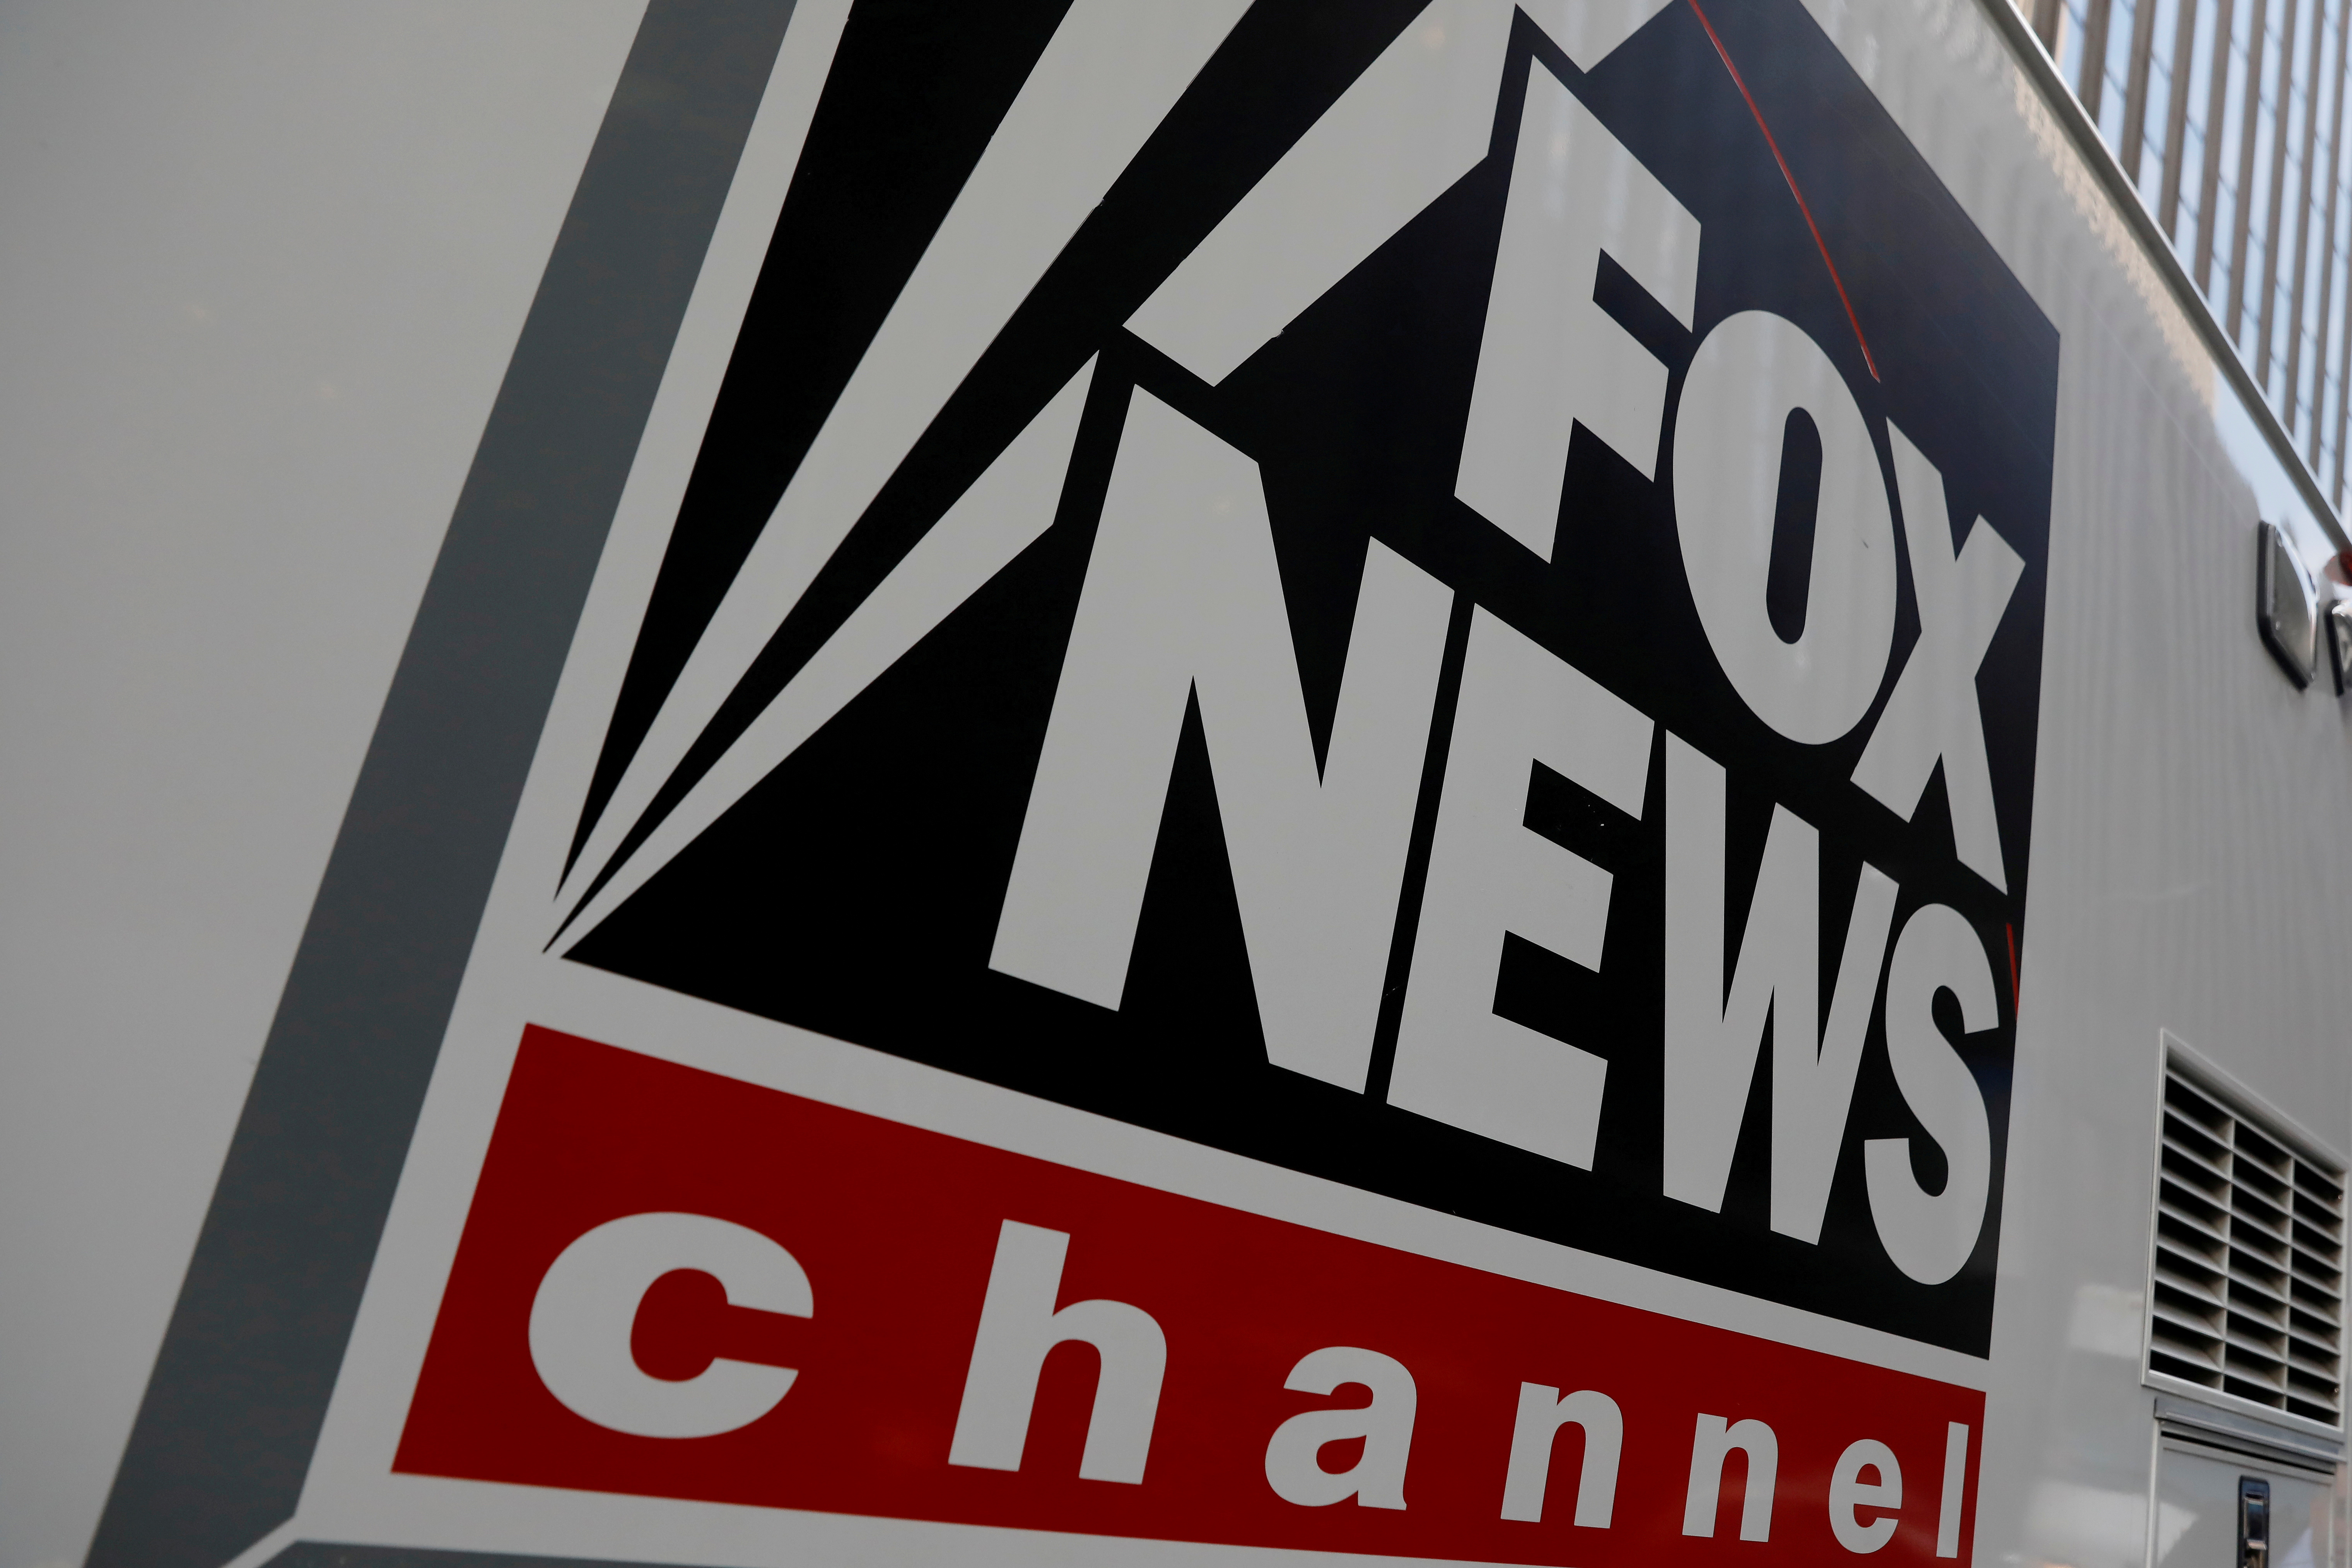 FILE PHOTO: A Fox News channel sign is seen on a television vehicle outside the News Corporation building in New York City, in New York, U.S. November 8, 2017. REUTERS/Shannon Stapleton/